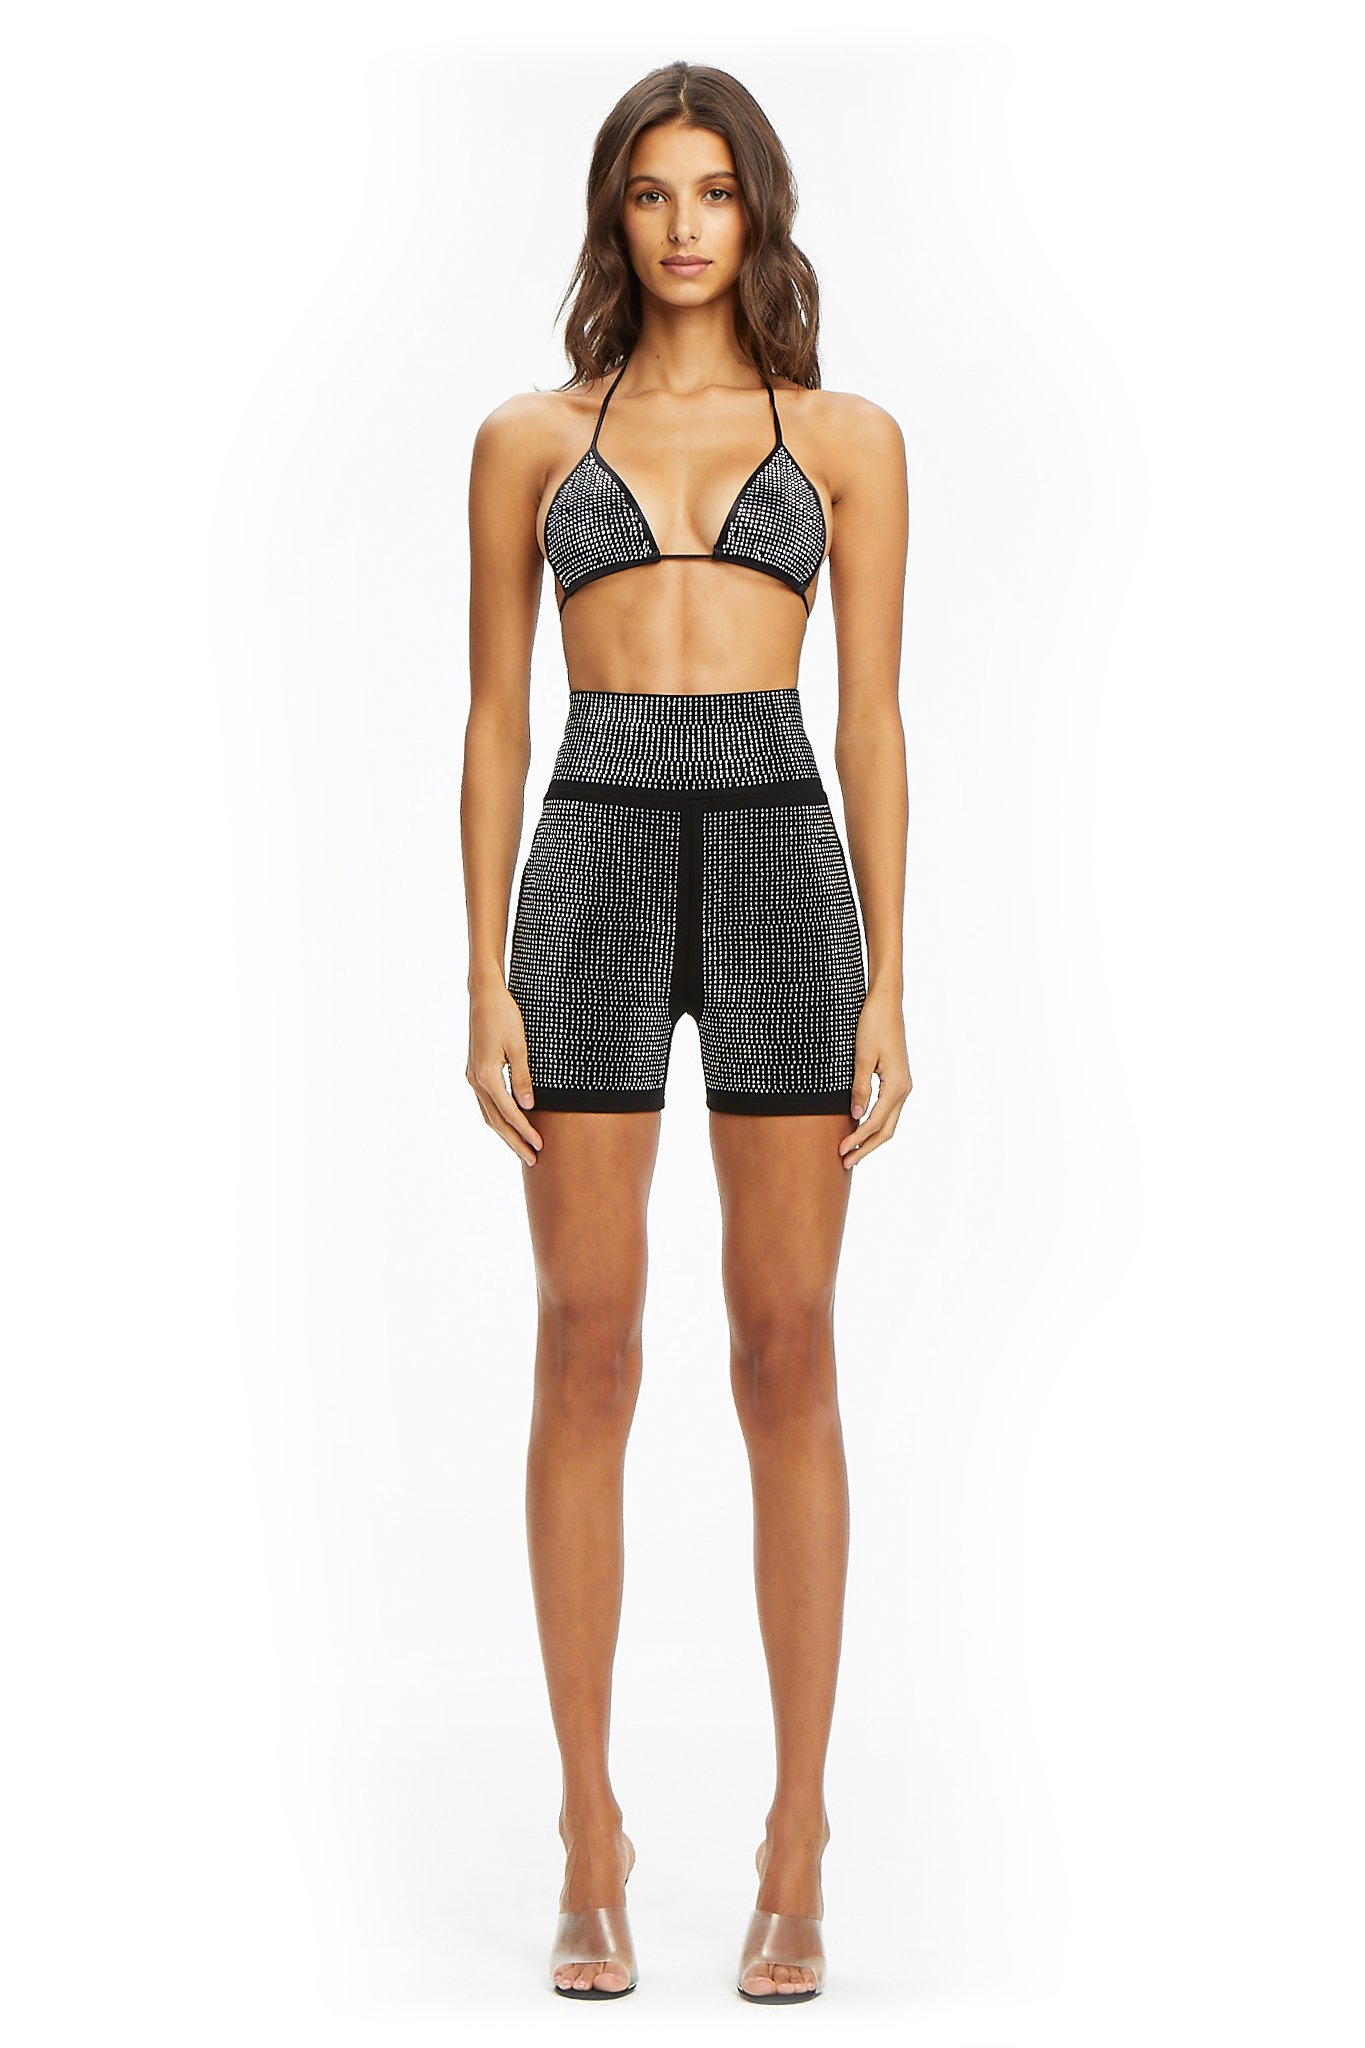 https://iamgia.com/collections/all/products/aurora-short-black